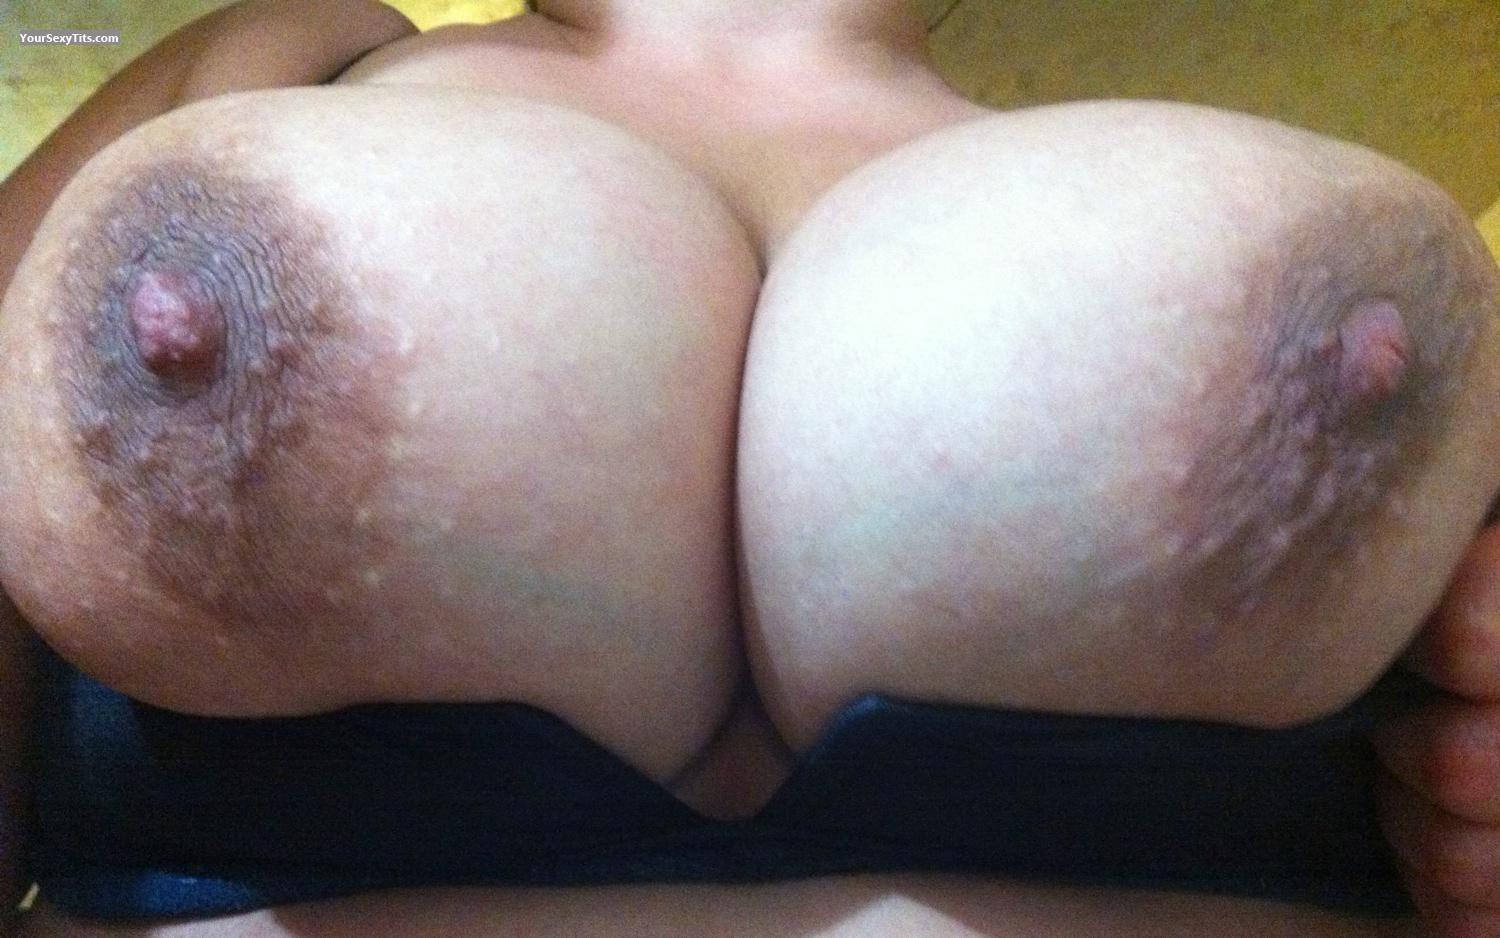 Tit Flash: My Very Big Tits By IPhone (Selfie) - Lady Dee from United States